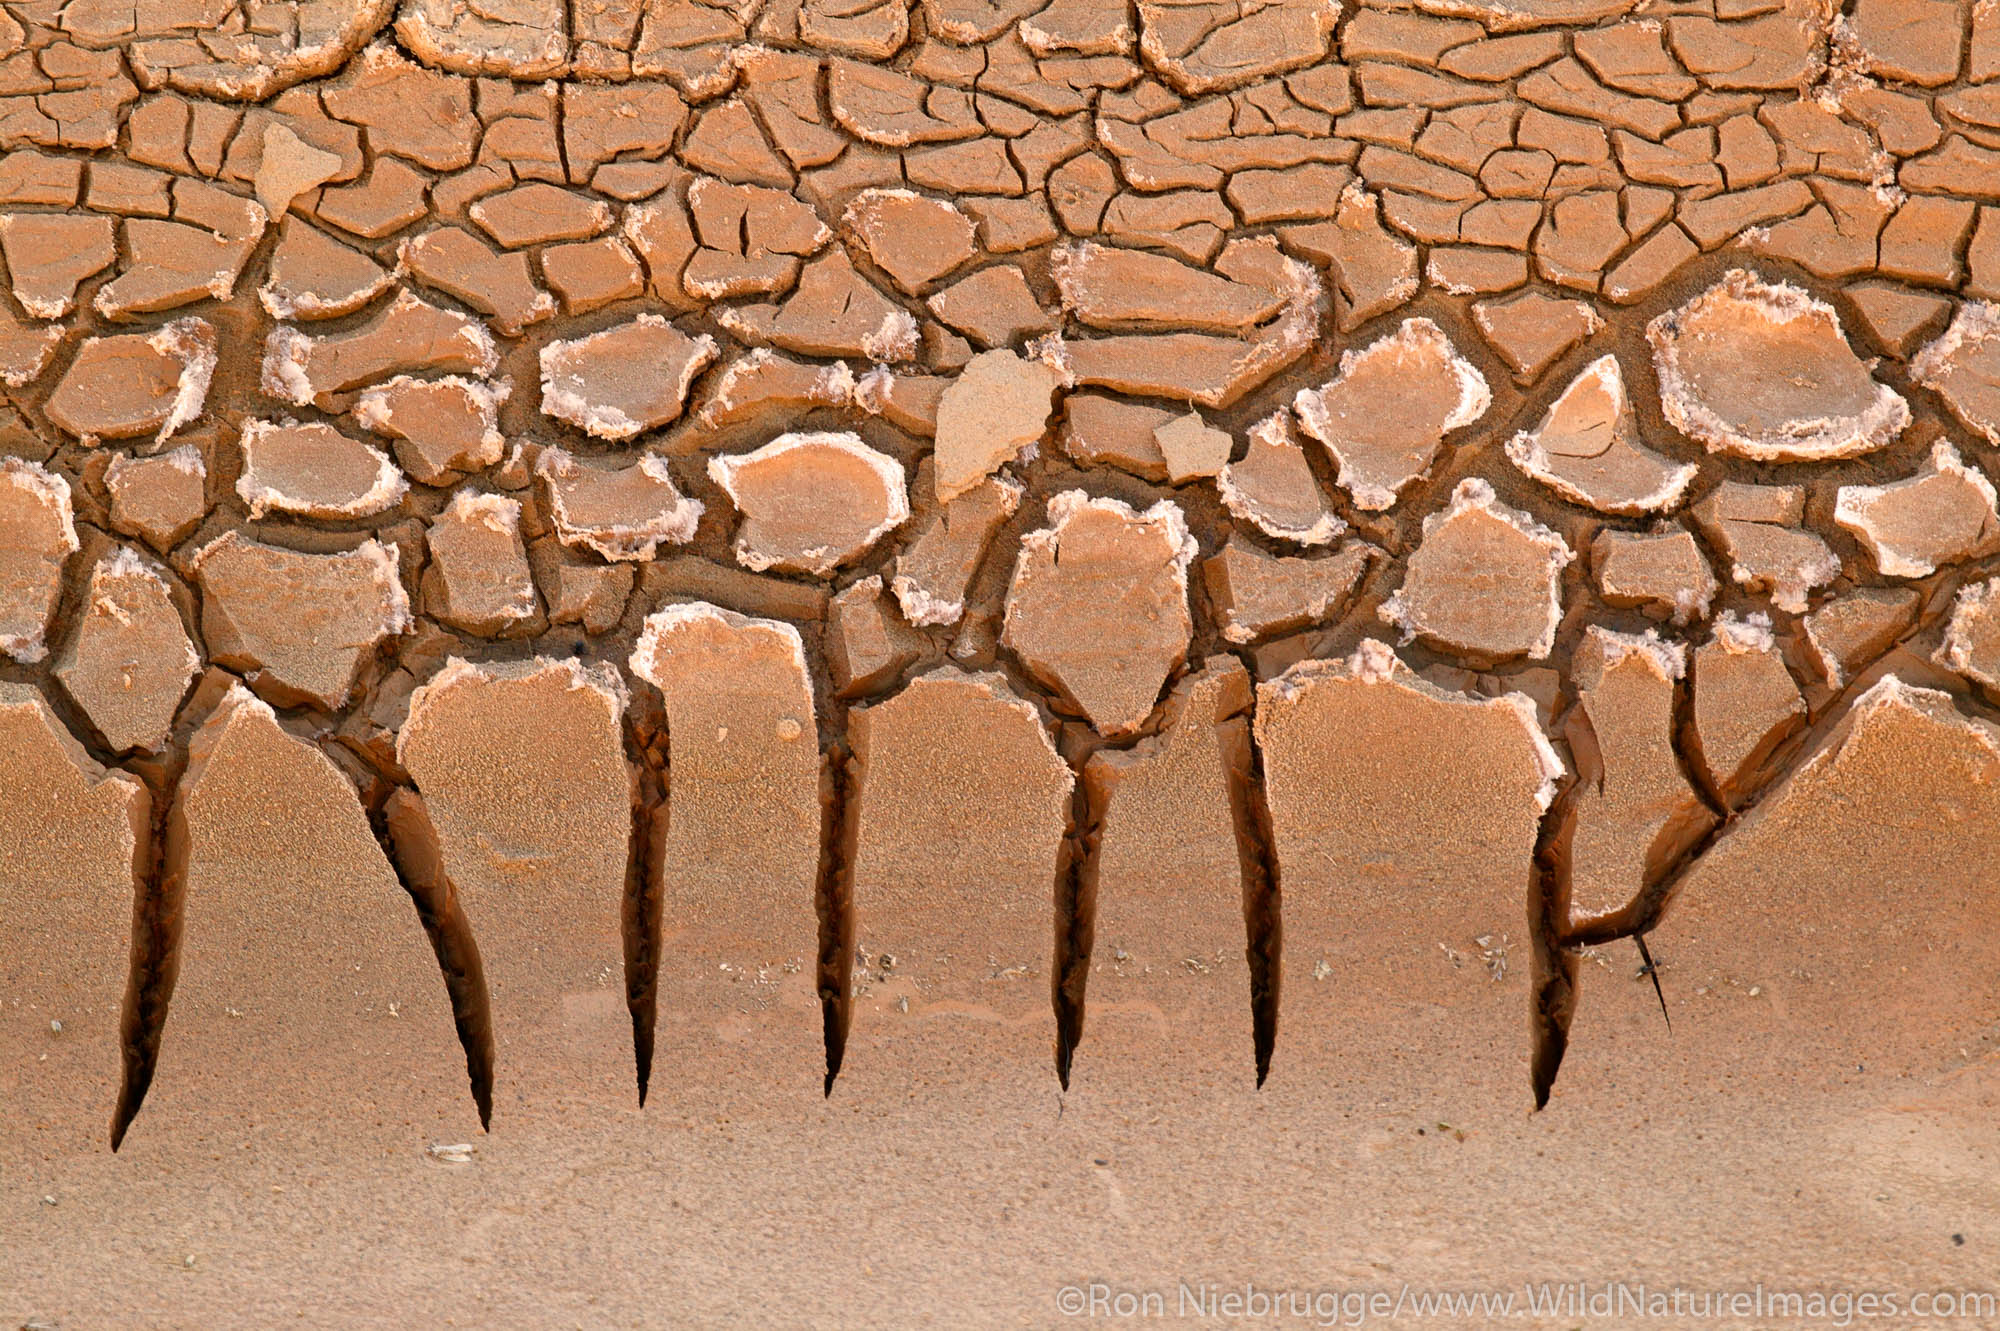 Dried mud in the Amargosa River bed, Death Valley National Park, California.